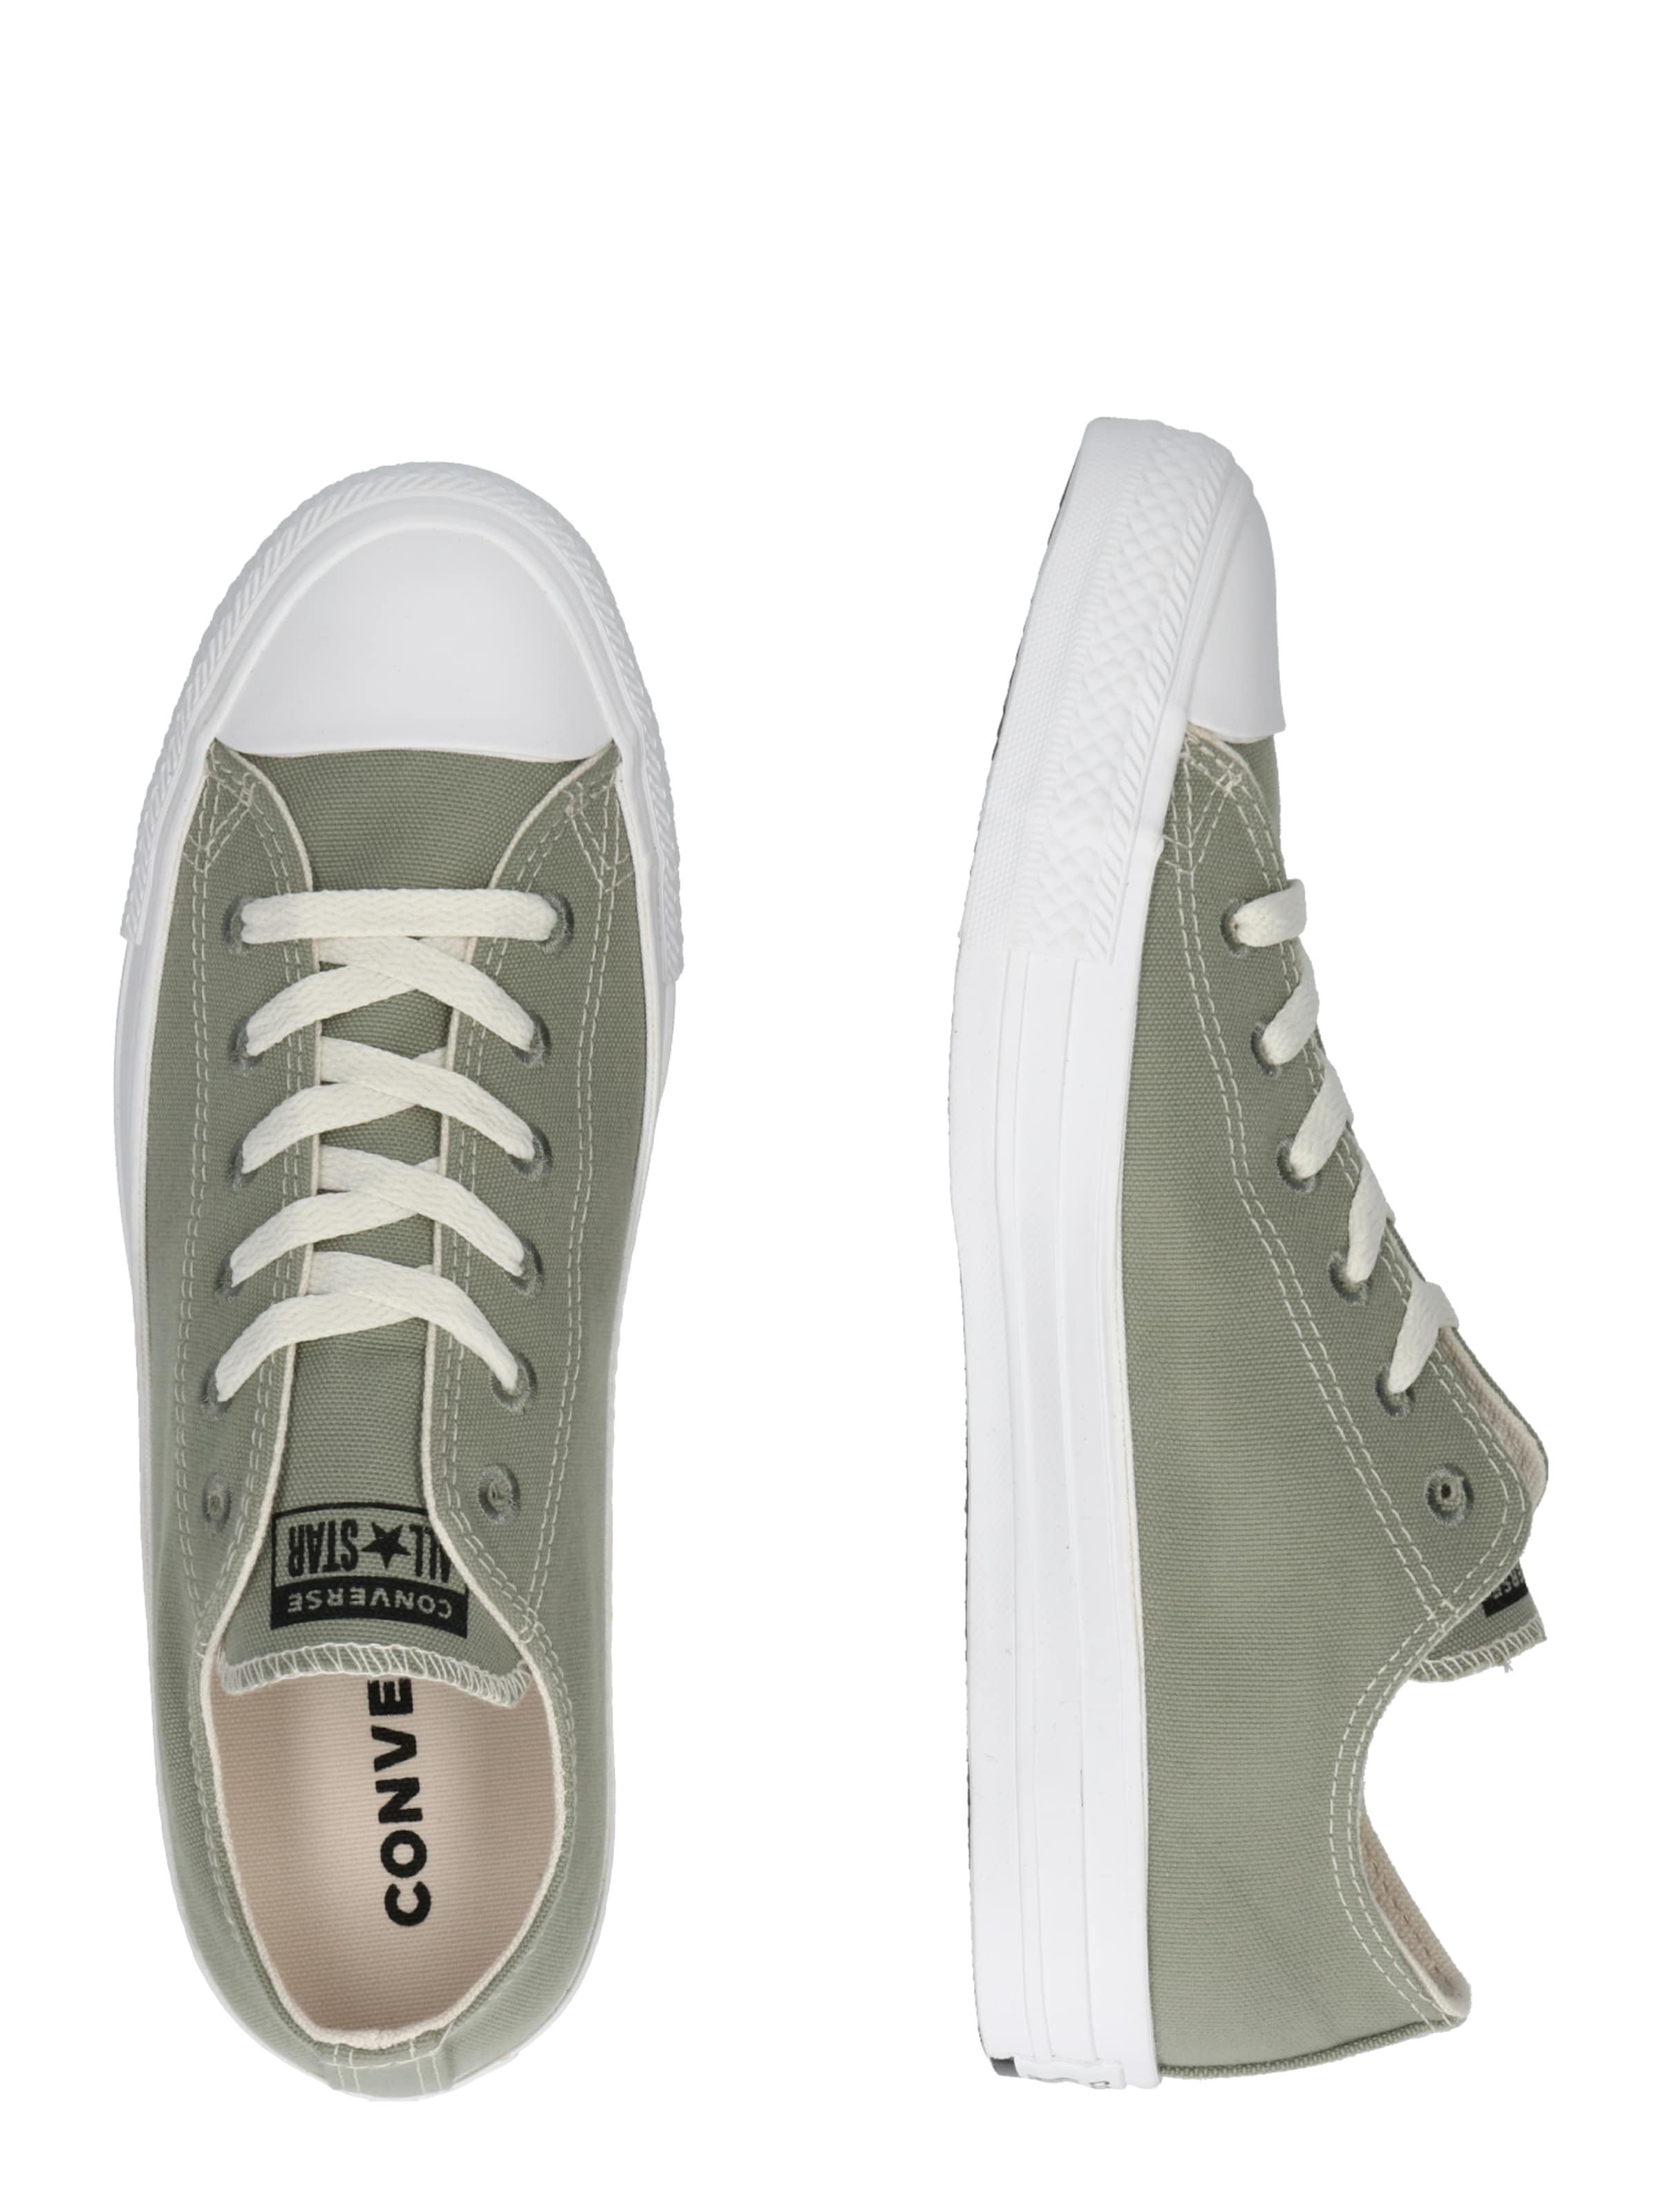 Vert Basses Baskets Taylor Converse 'chuck Star En All RenewOx' rdxCeBEQoW